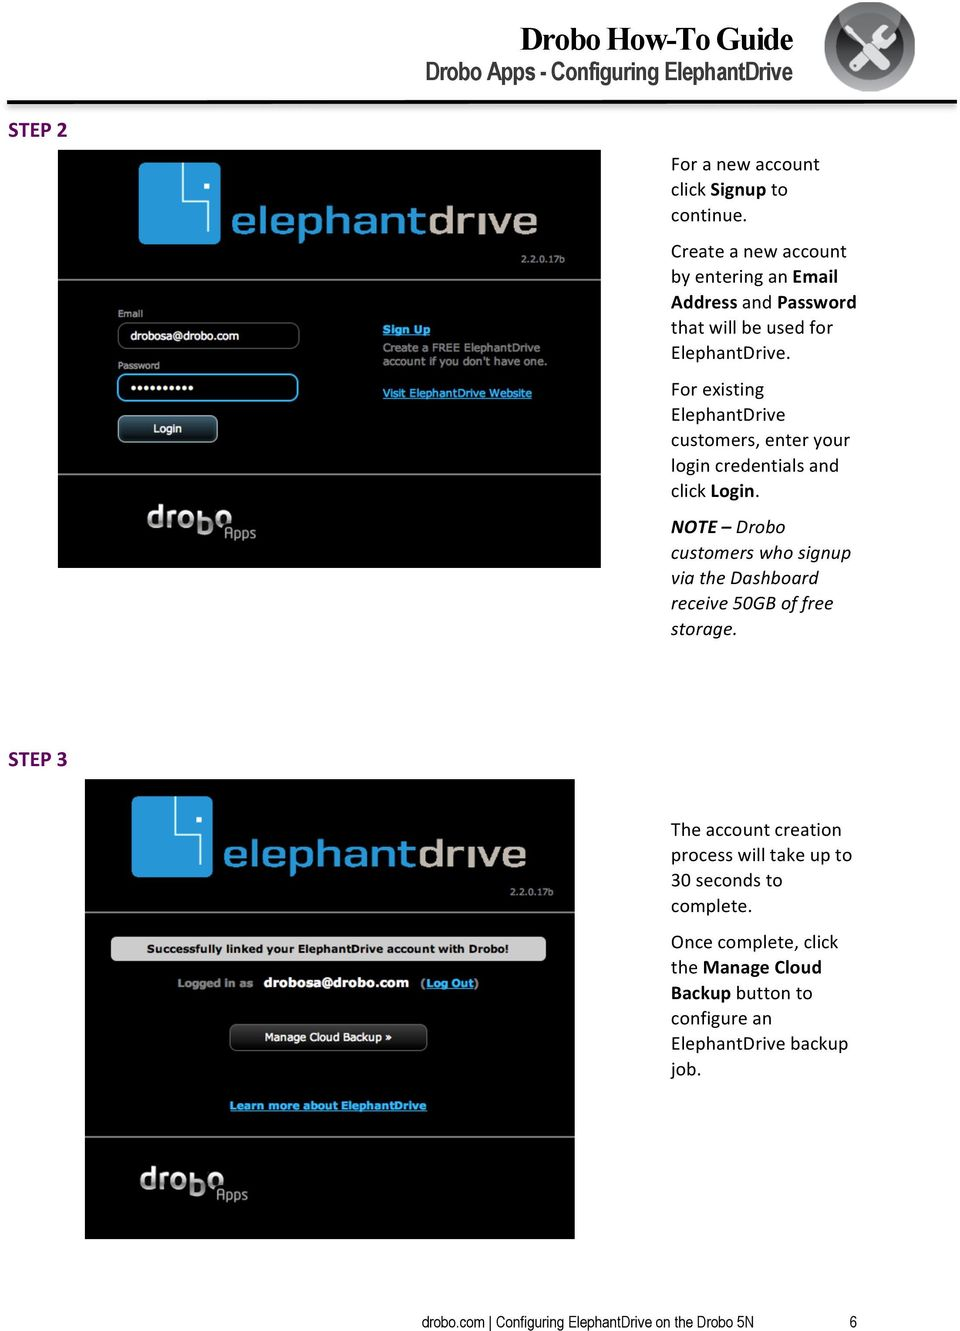 For existing ElephantDrive customers, enter your login credentials and click Login.